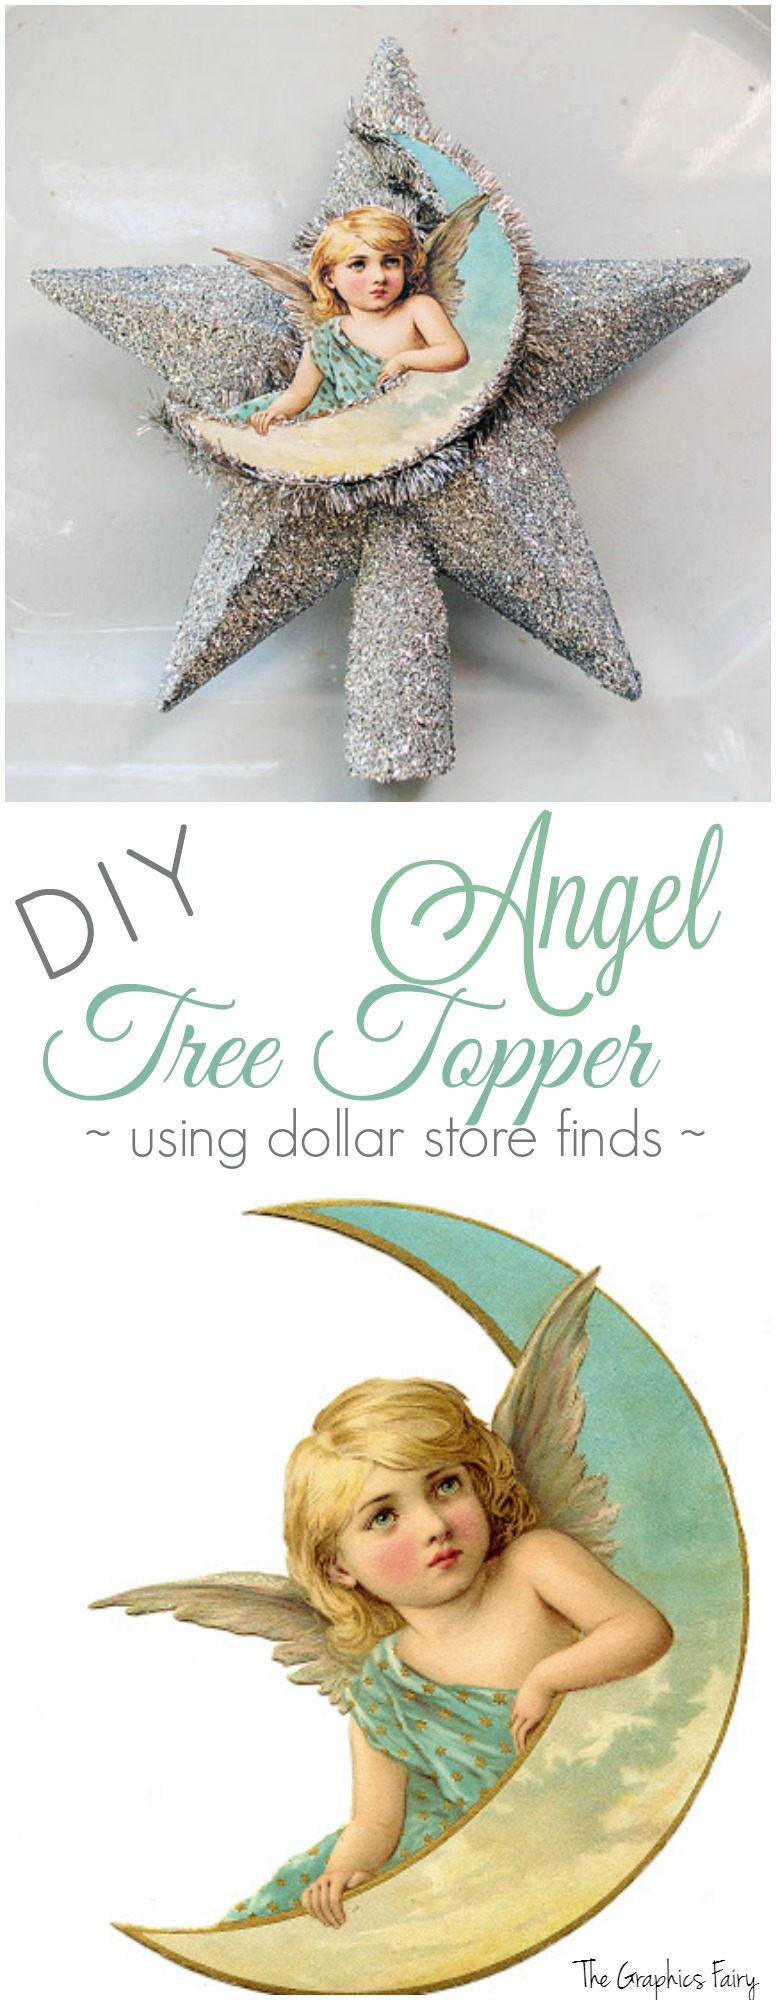 DIY Angel Tree Topper - using dollar store finds!